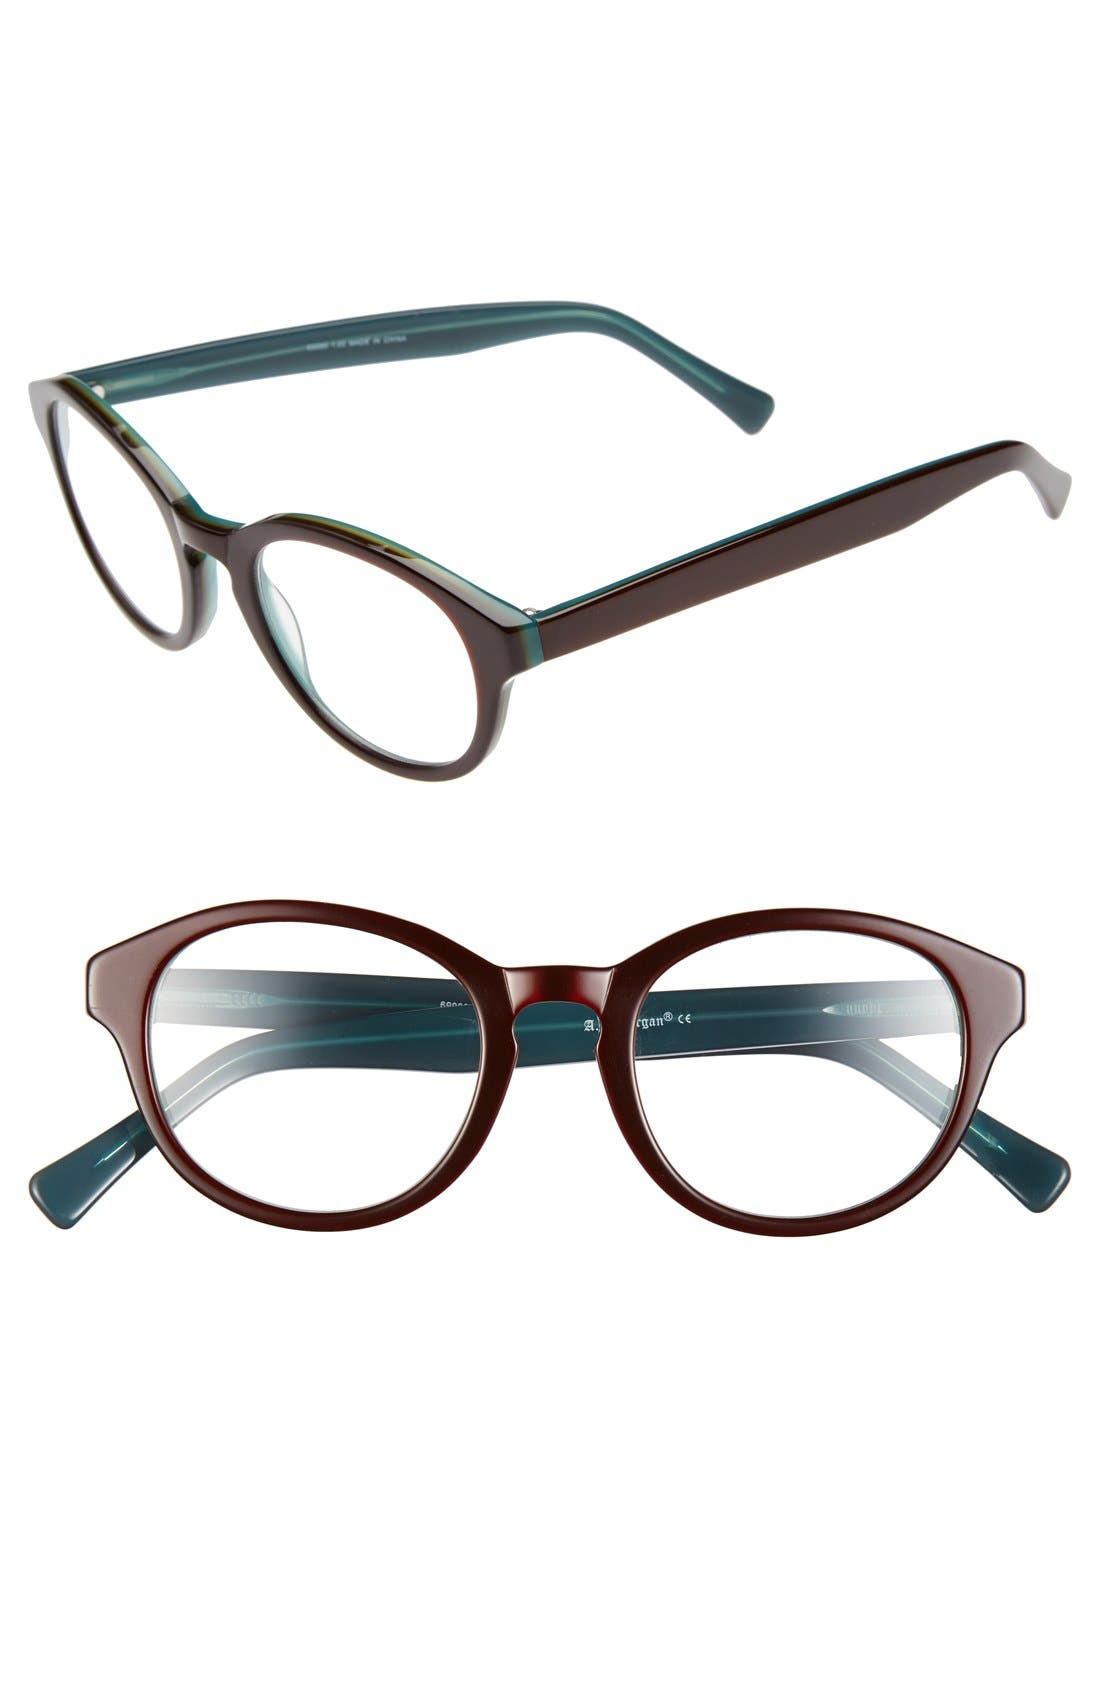 Alternate Image 1 Selected - A.J. Morgan 'Ohm' 58mm Reading Glasses